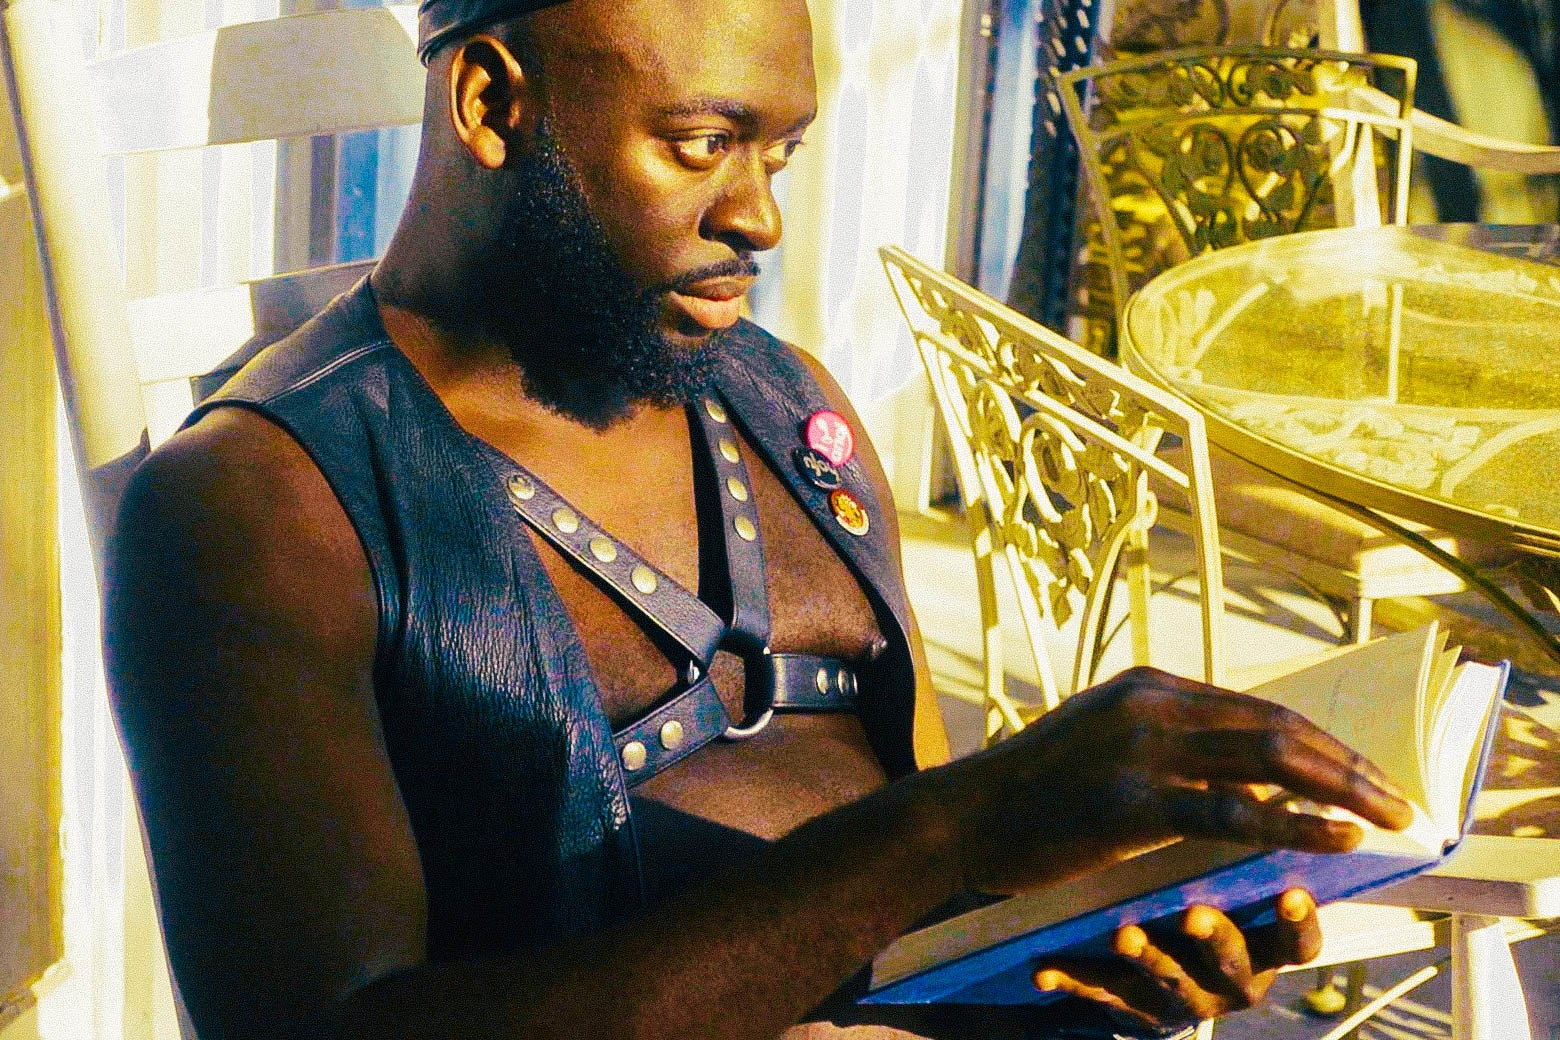 A man sitting outdoors wearing a leather vest and harness reading a book